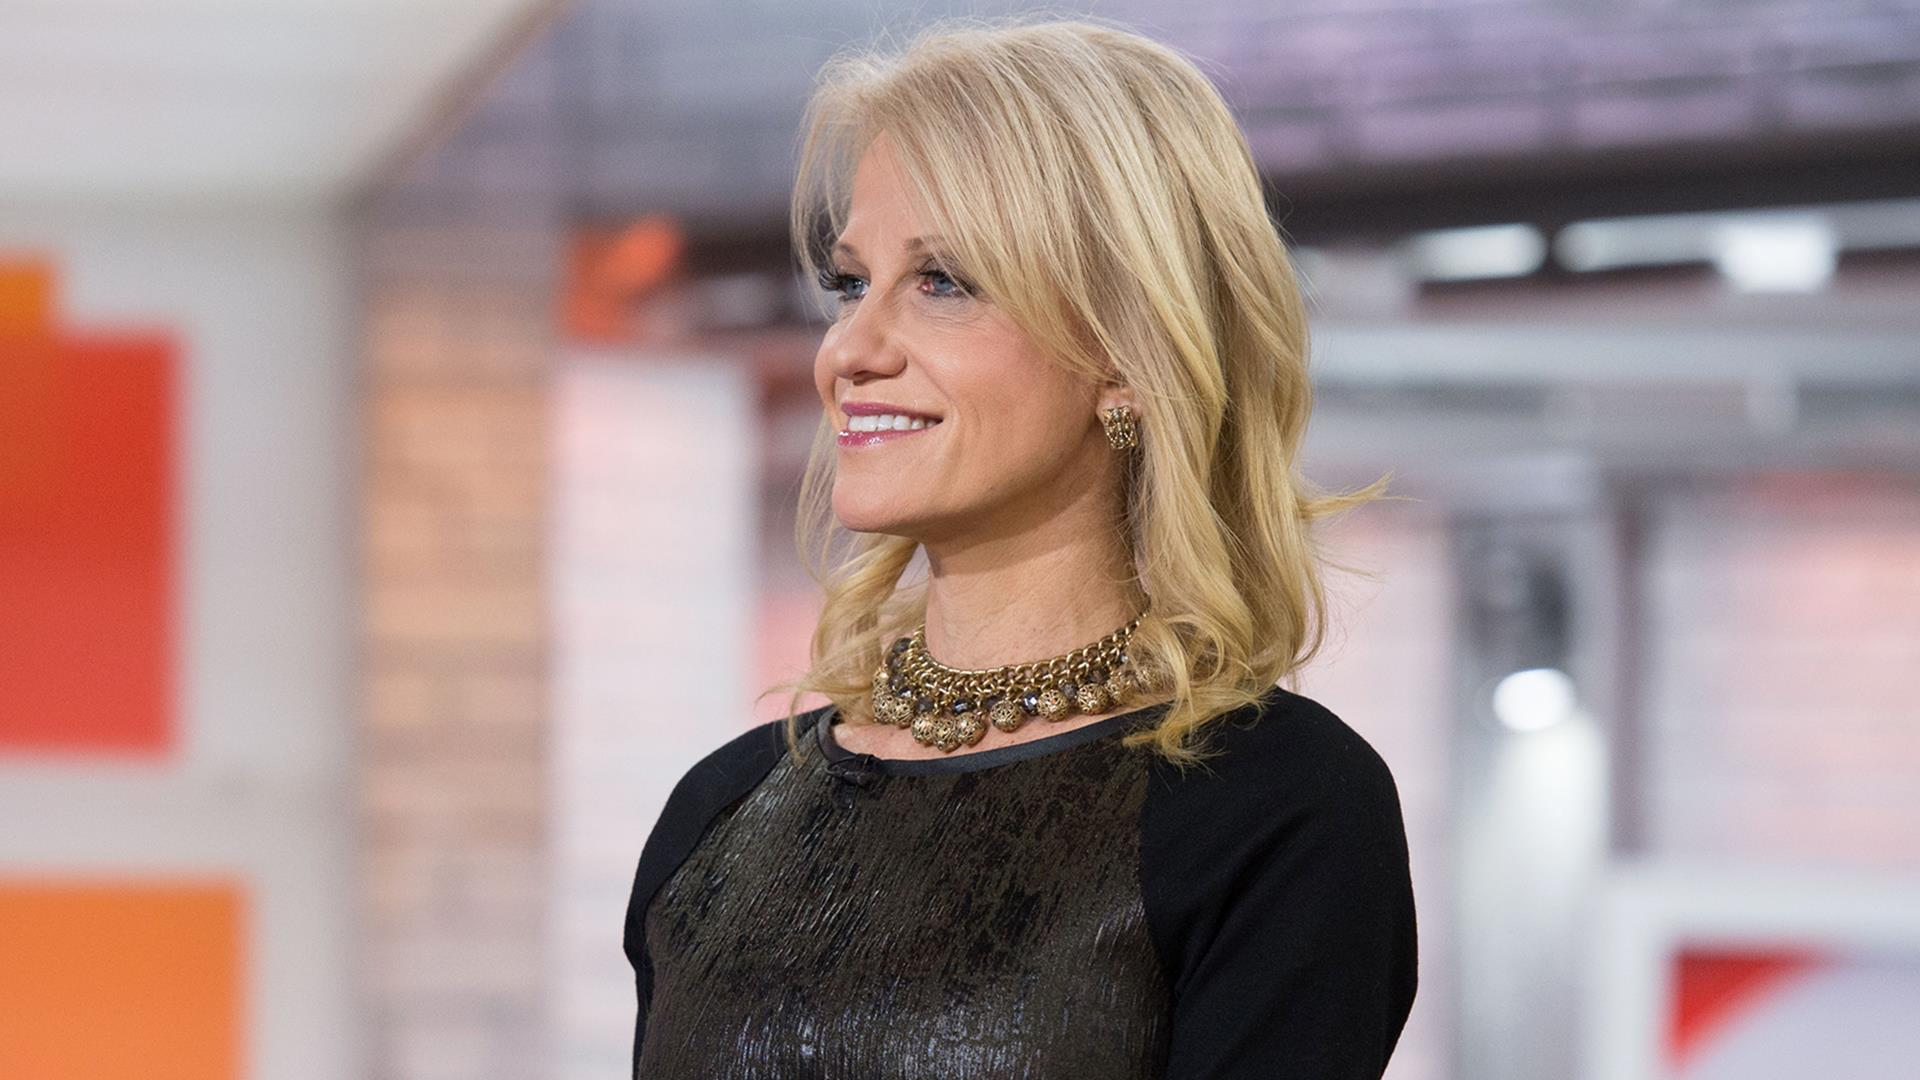 Kellyanne Conway Seems to Evade Wiretapping Questions